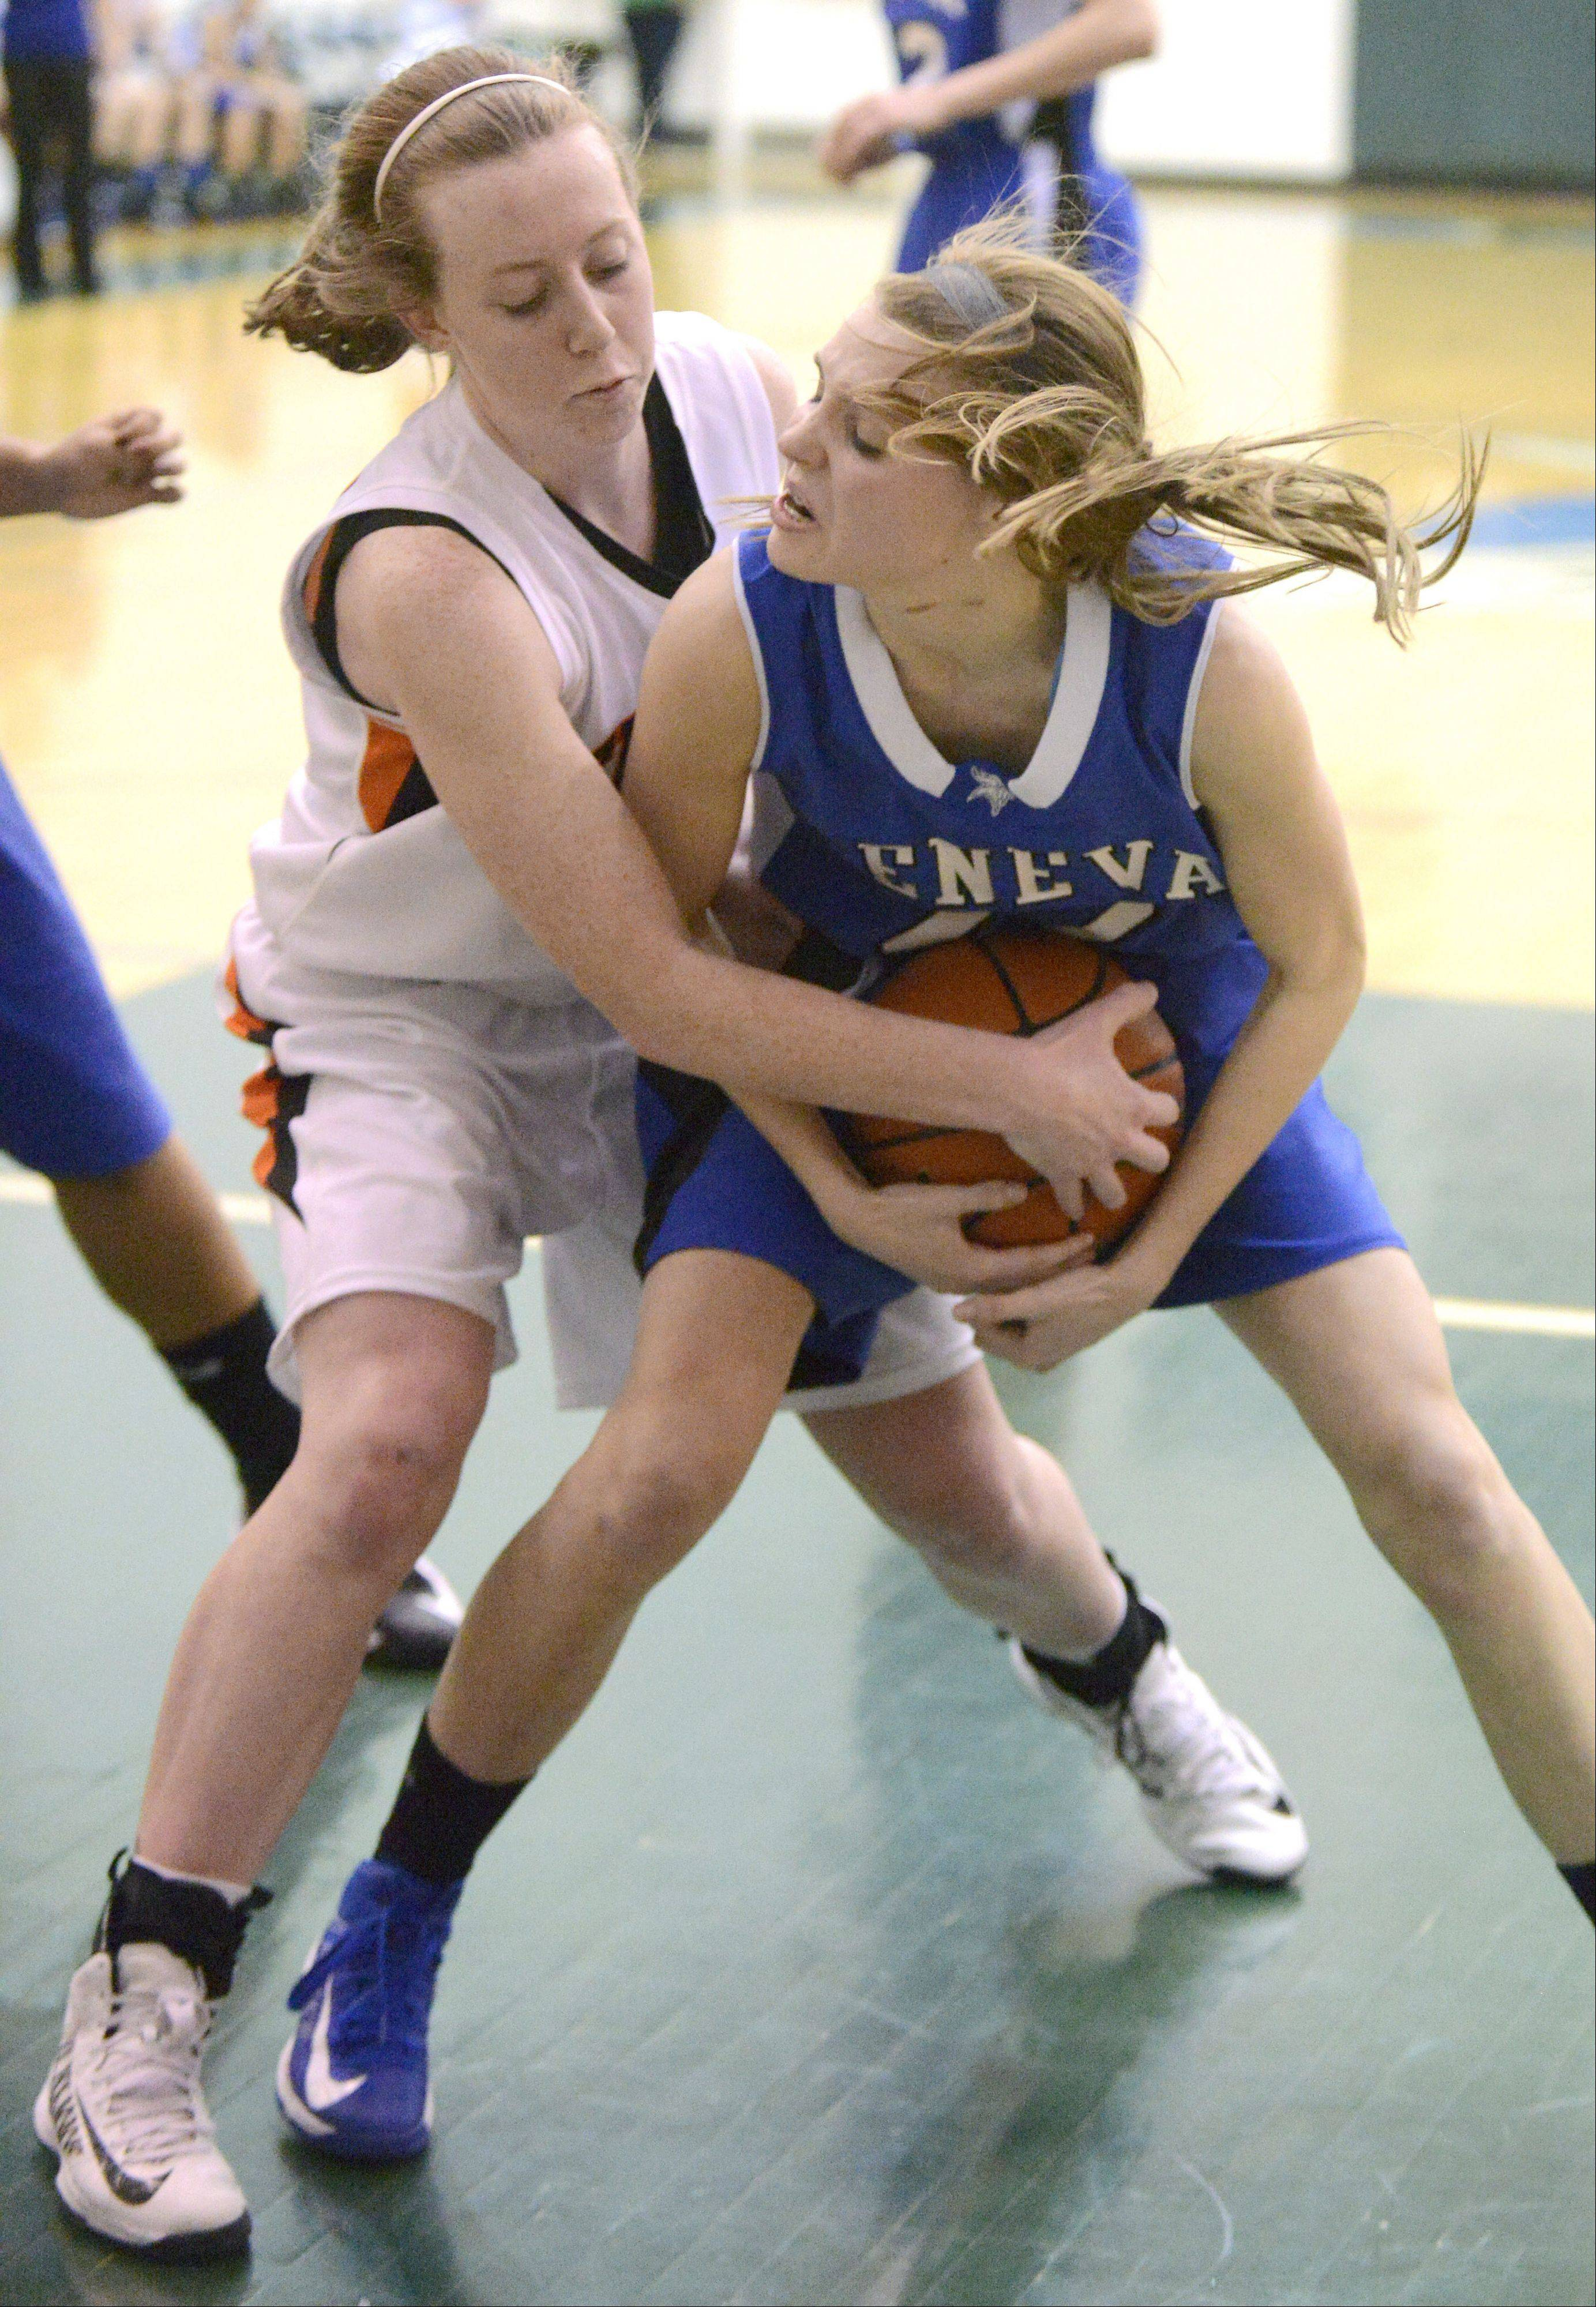 Geneva's Morgan Seberger struggles to keep a rebound from Wheaton Warrenville South's Meghan Waldron in the fourth quarter of the Class 4A sectional semifinals on Tuesday, February 19.